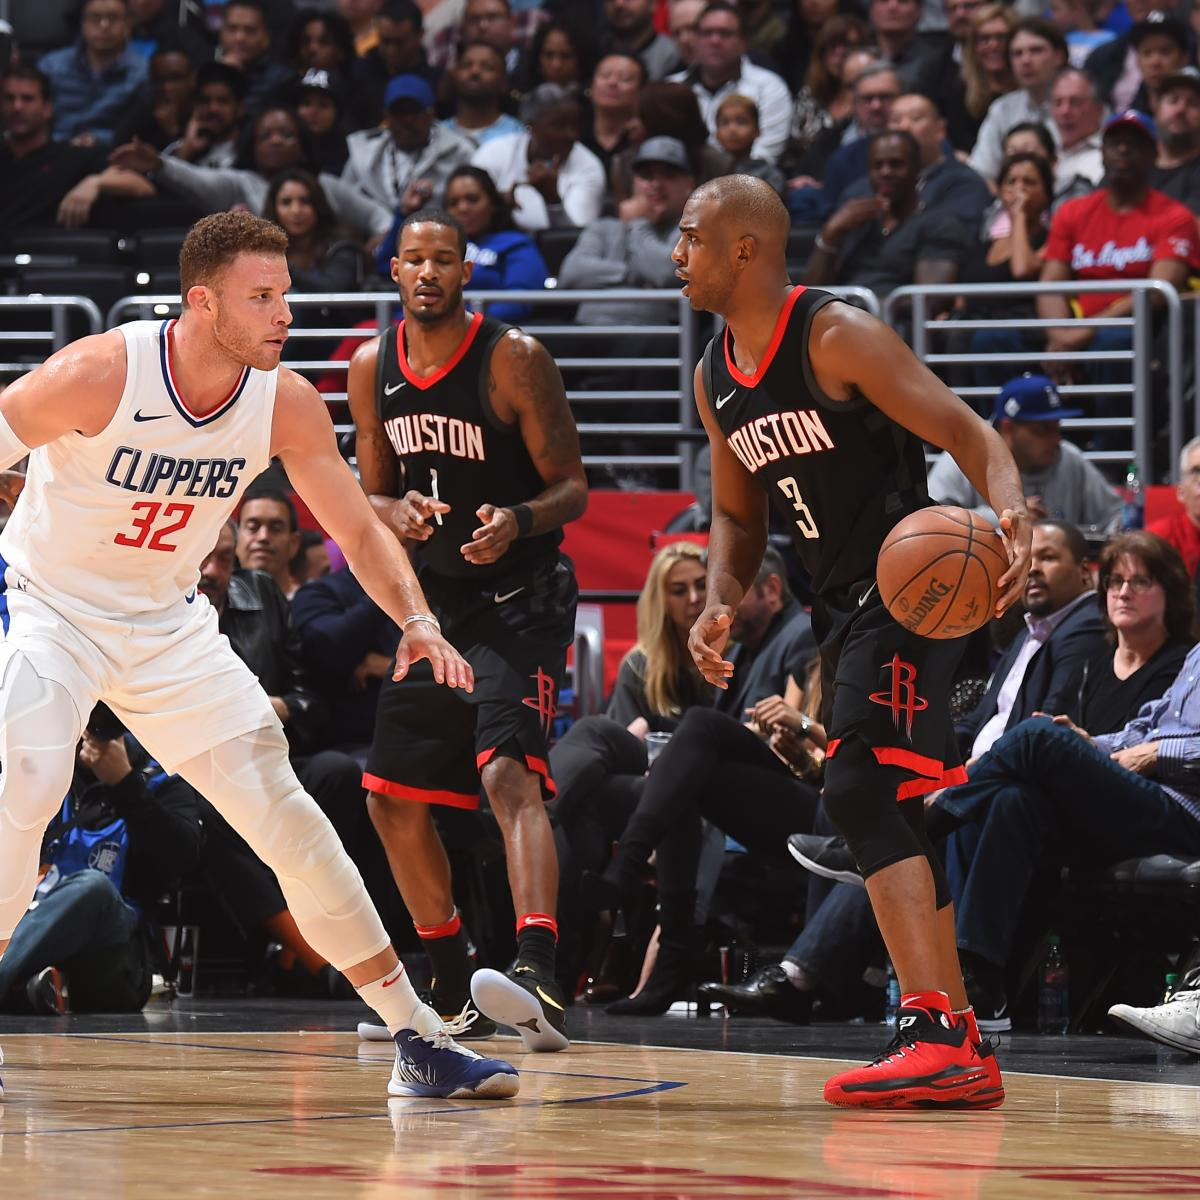 Nuggets Clippers Highlights: Blake Griffin, Clippers Spoil Chris Paul's LA Return In